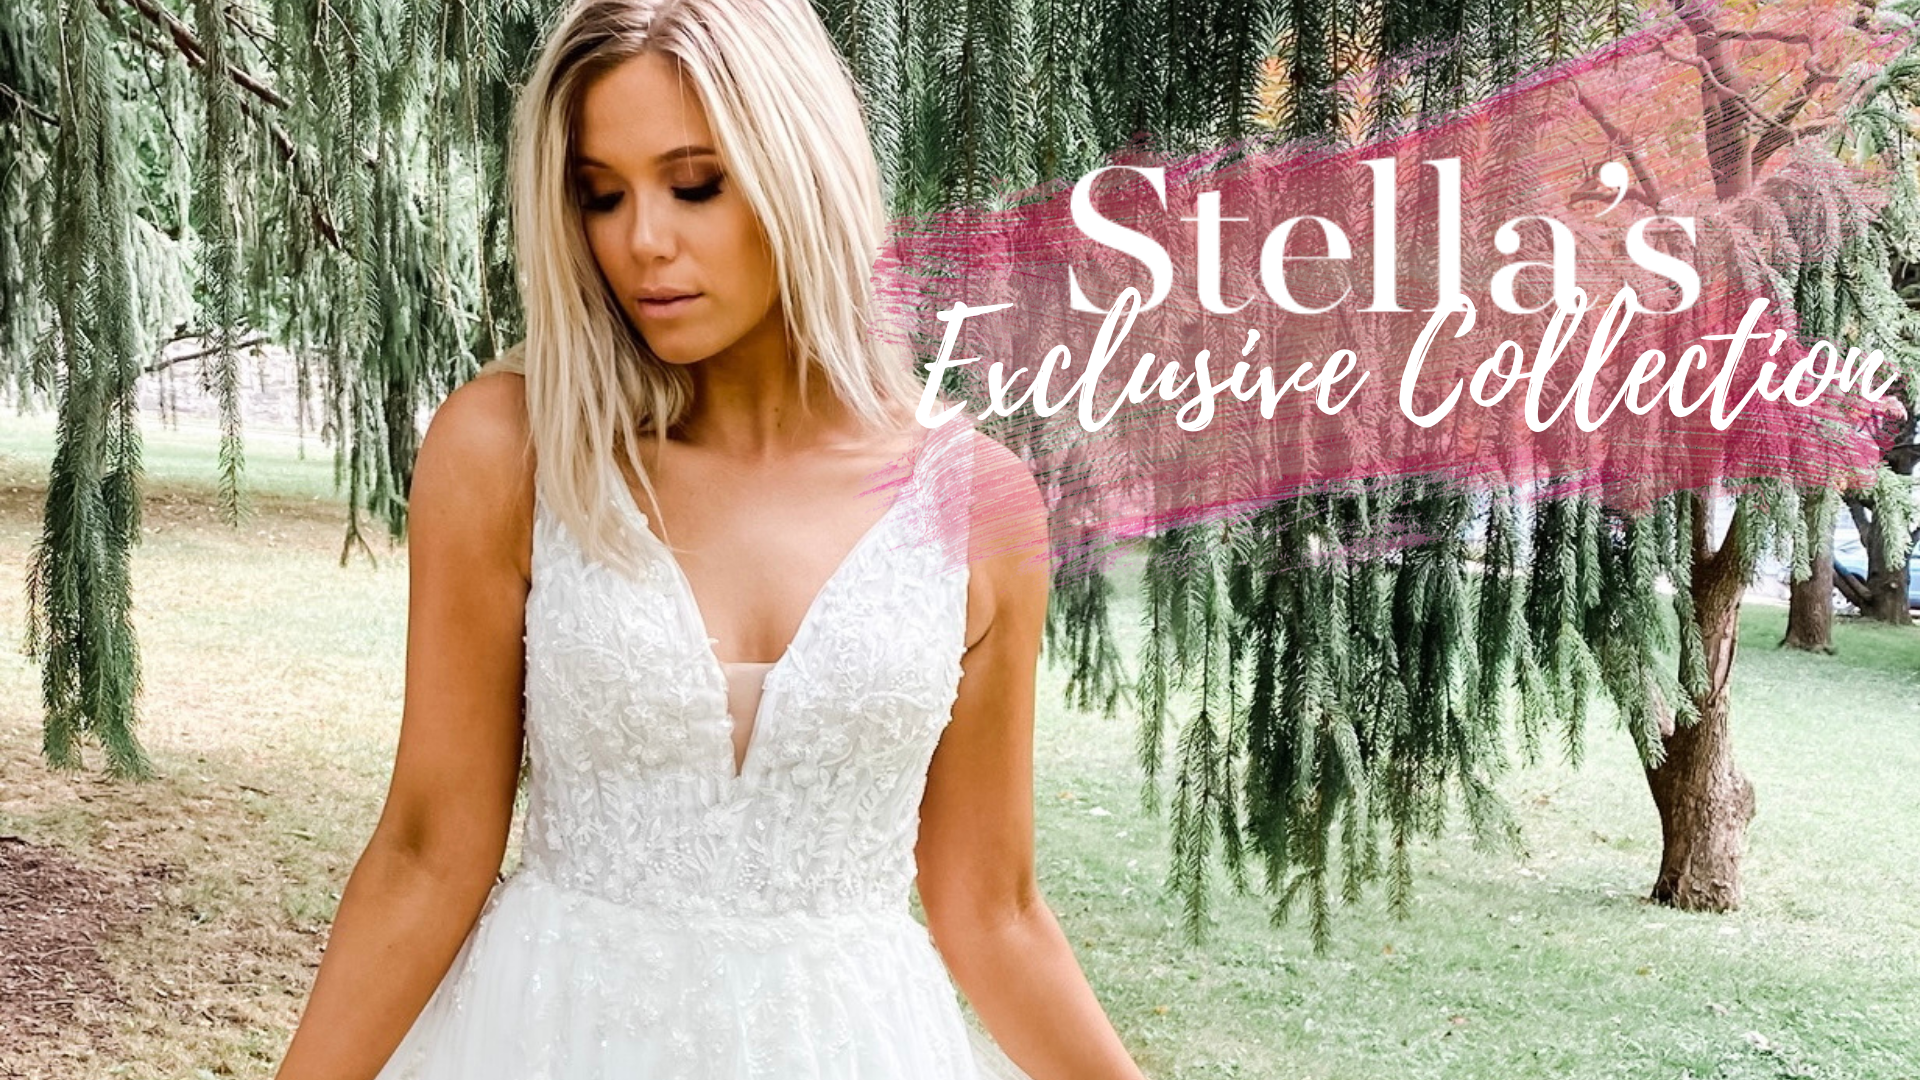 Stella's Exclusive Collection